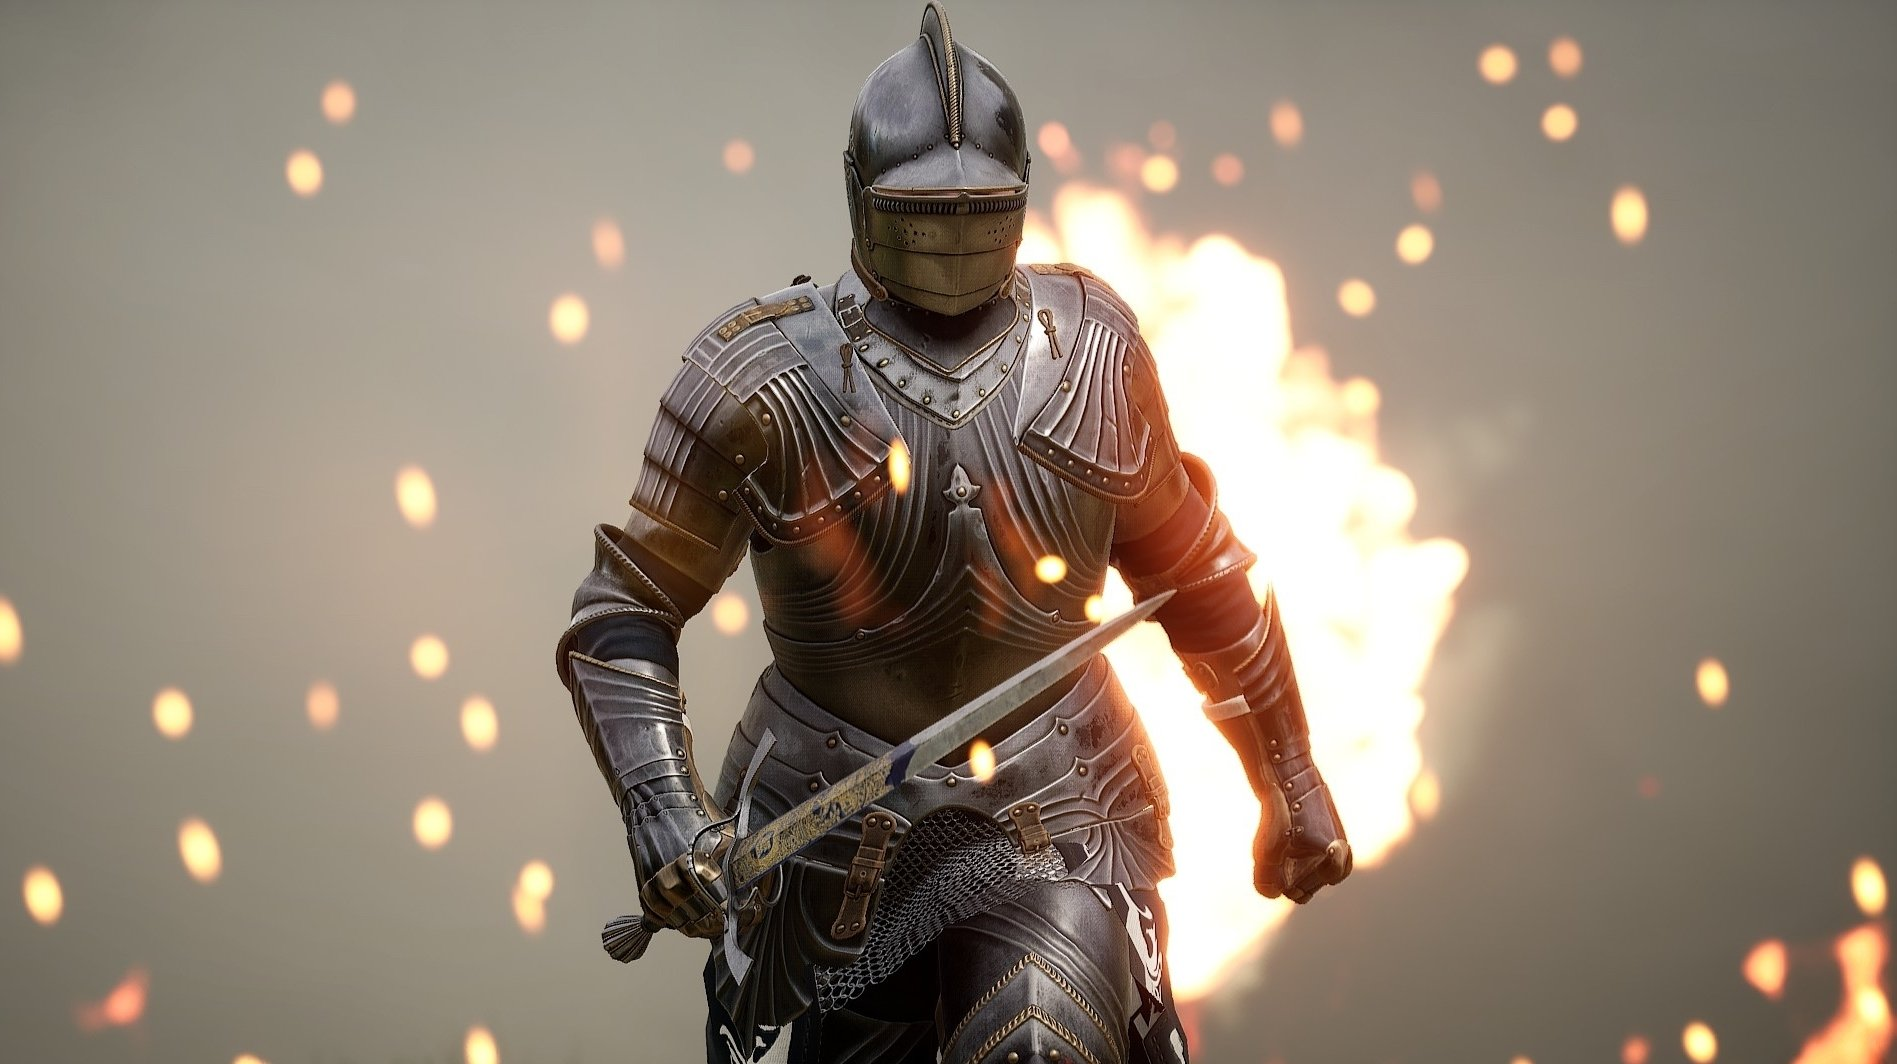 Mordhau is currently exclusive to PC, though a future console port isn't out of the question.